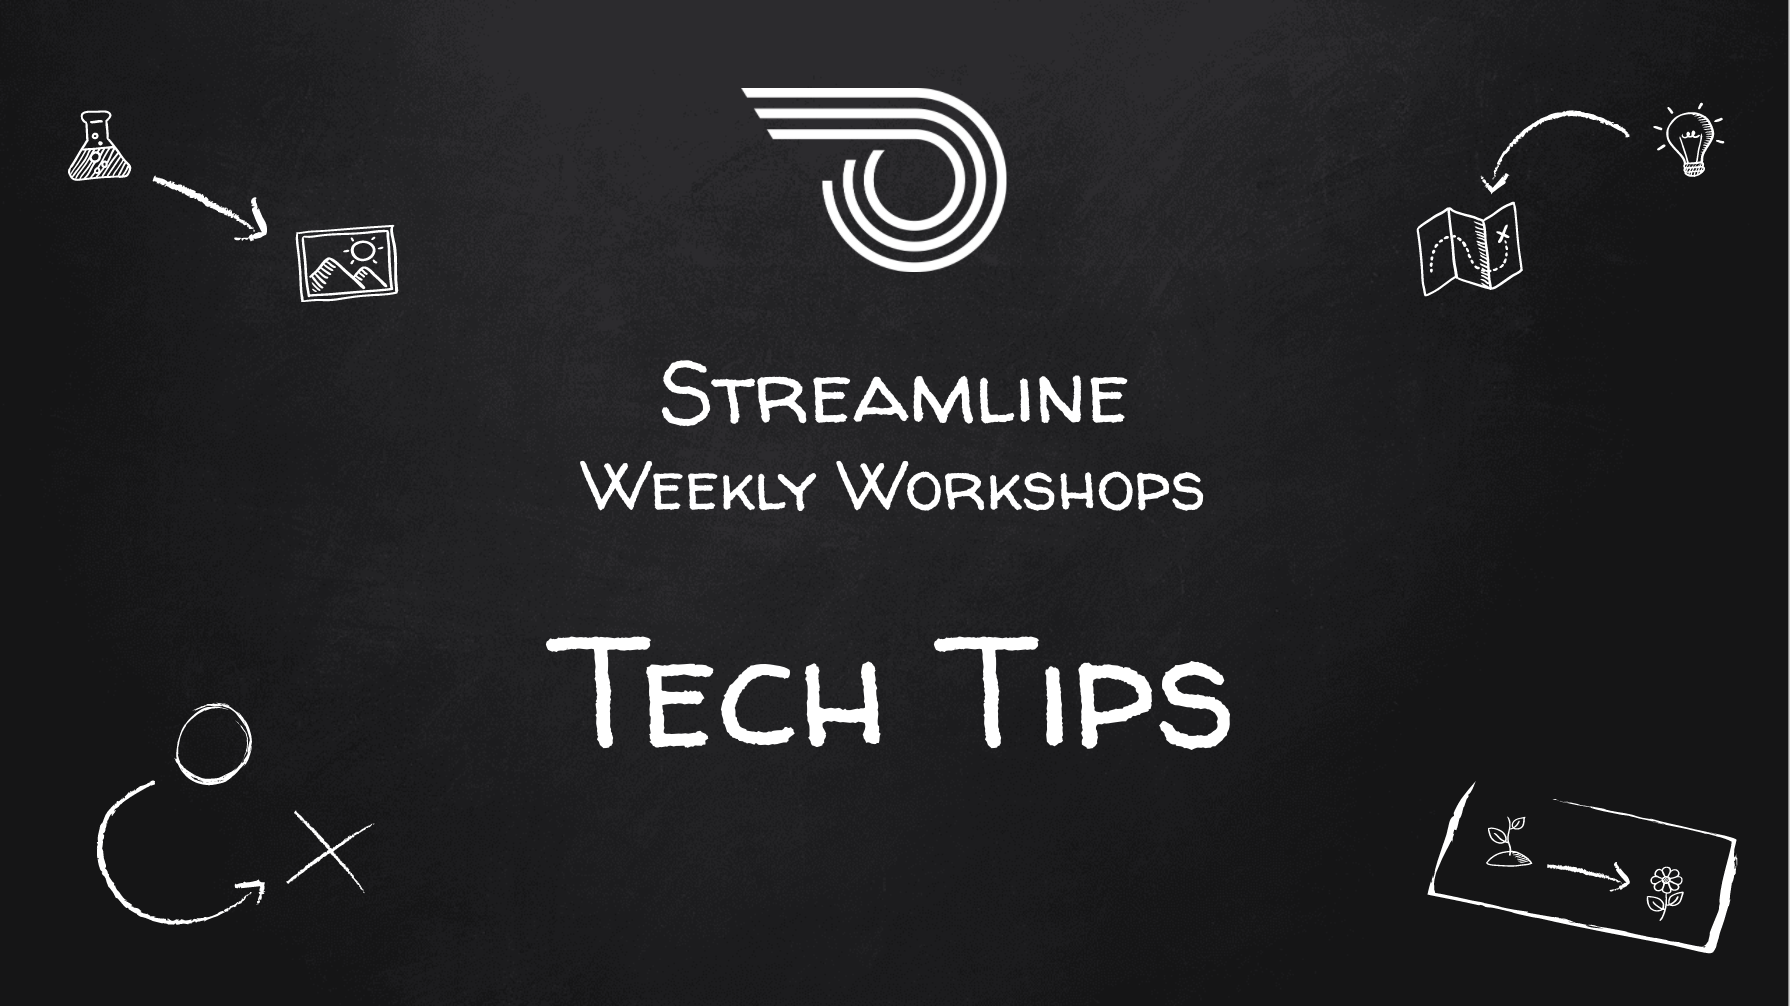 Tech tips slides